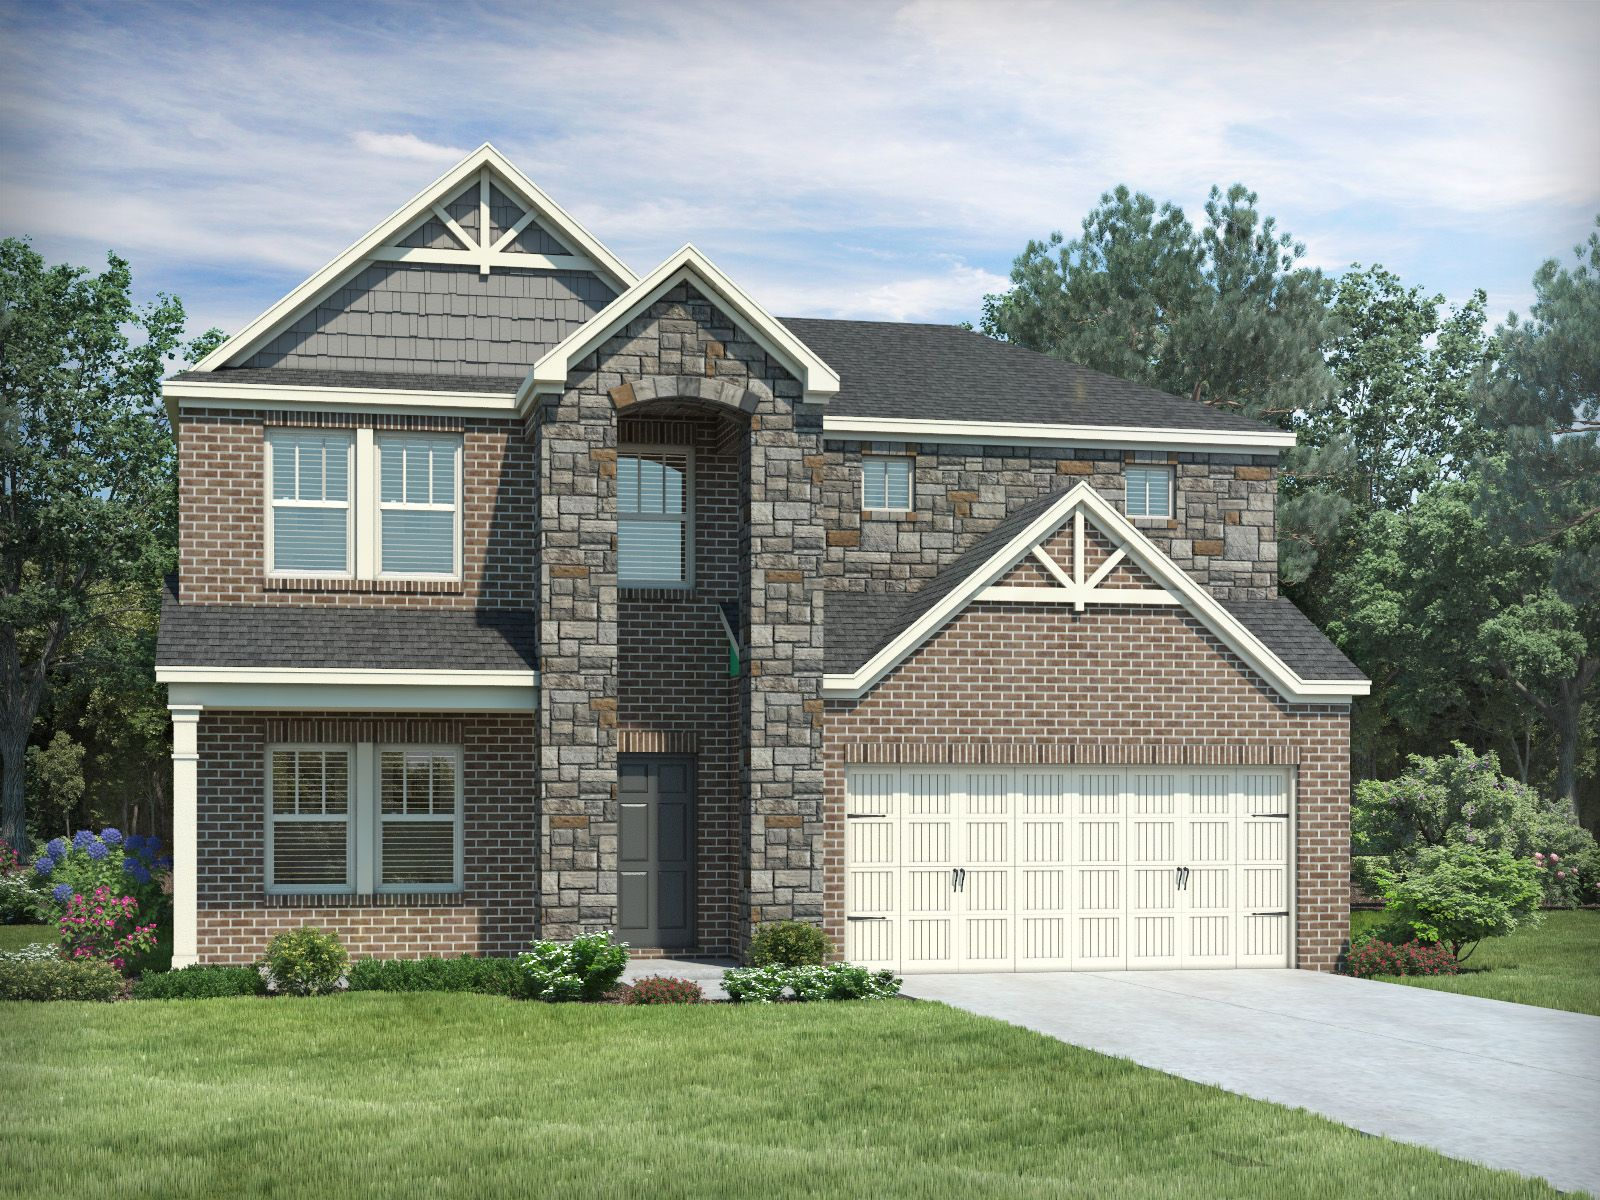 New Homes in Arrington, TN | 399 Communities | NewHomeSource